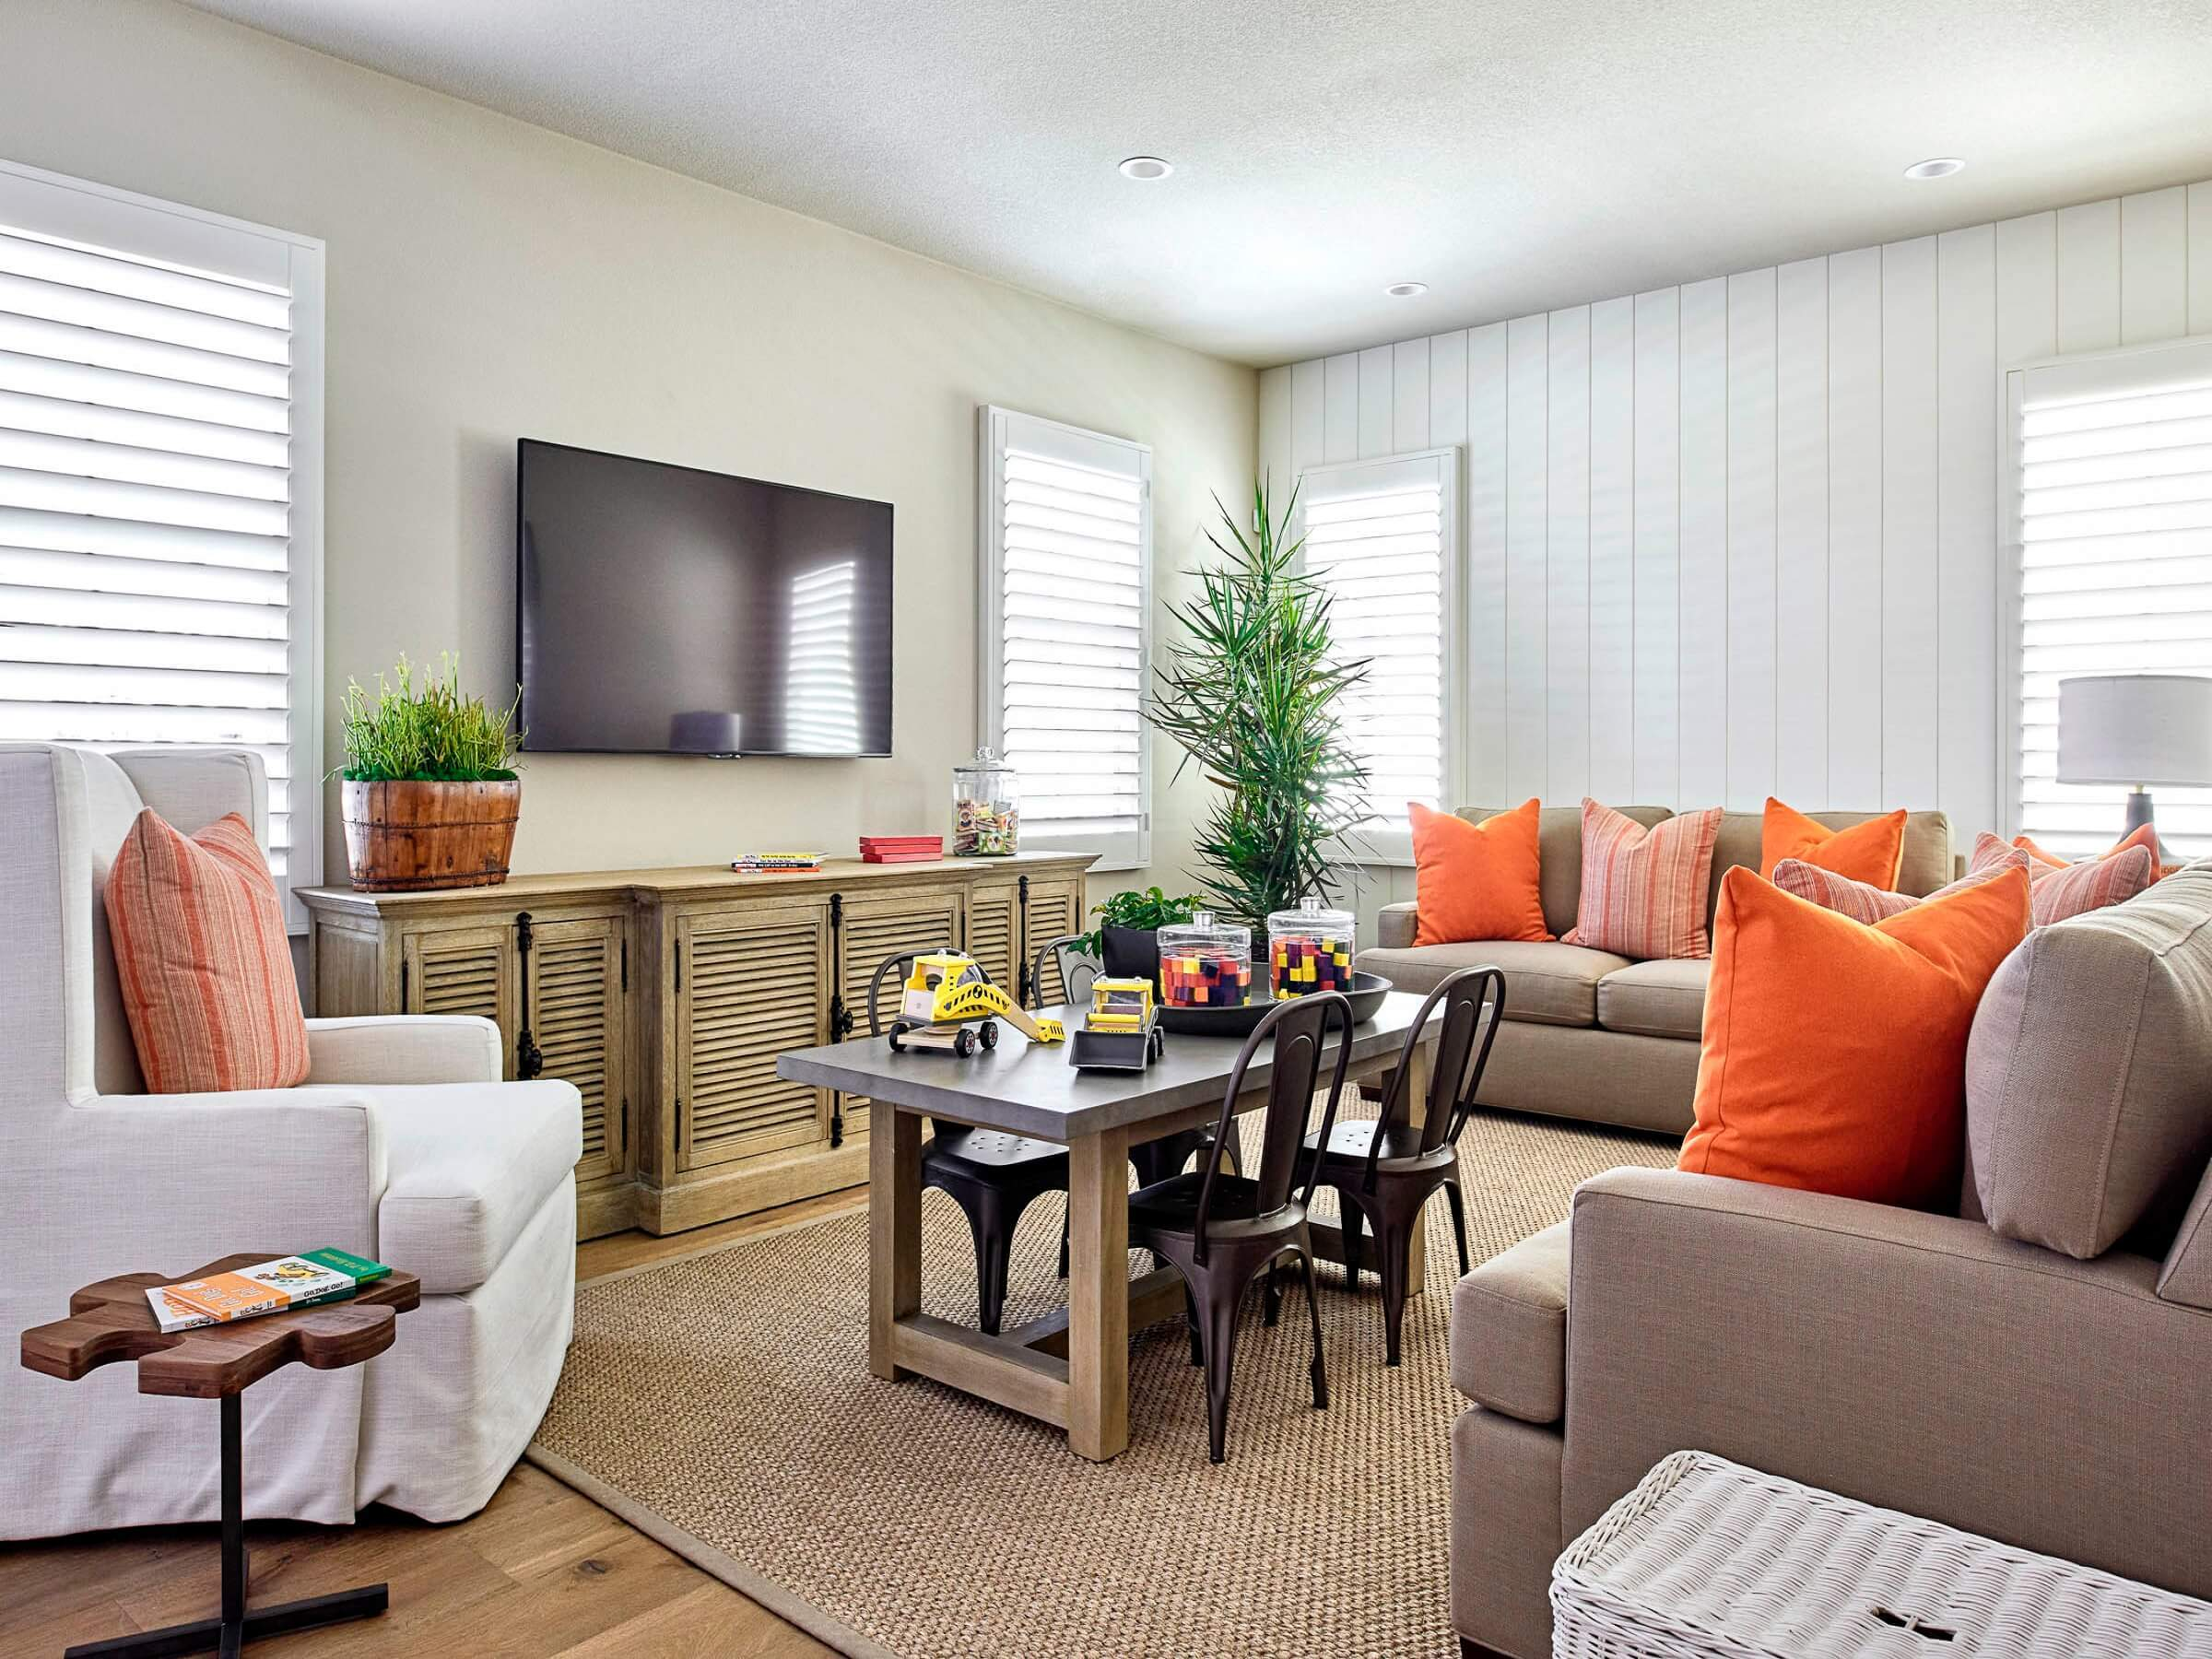 Photo of Calistoga at Eastwood Village in Irvine, CA 92620